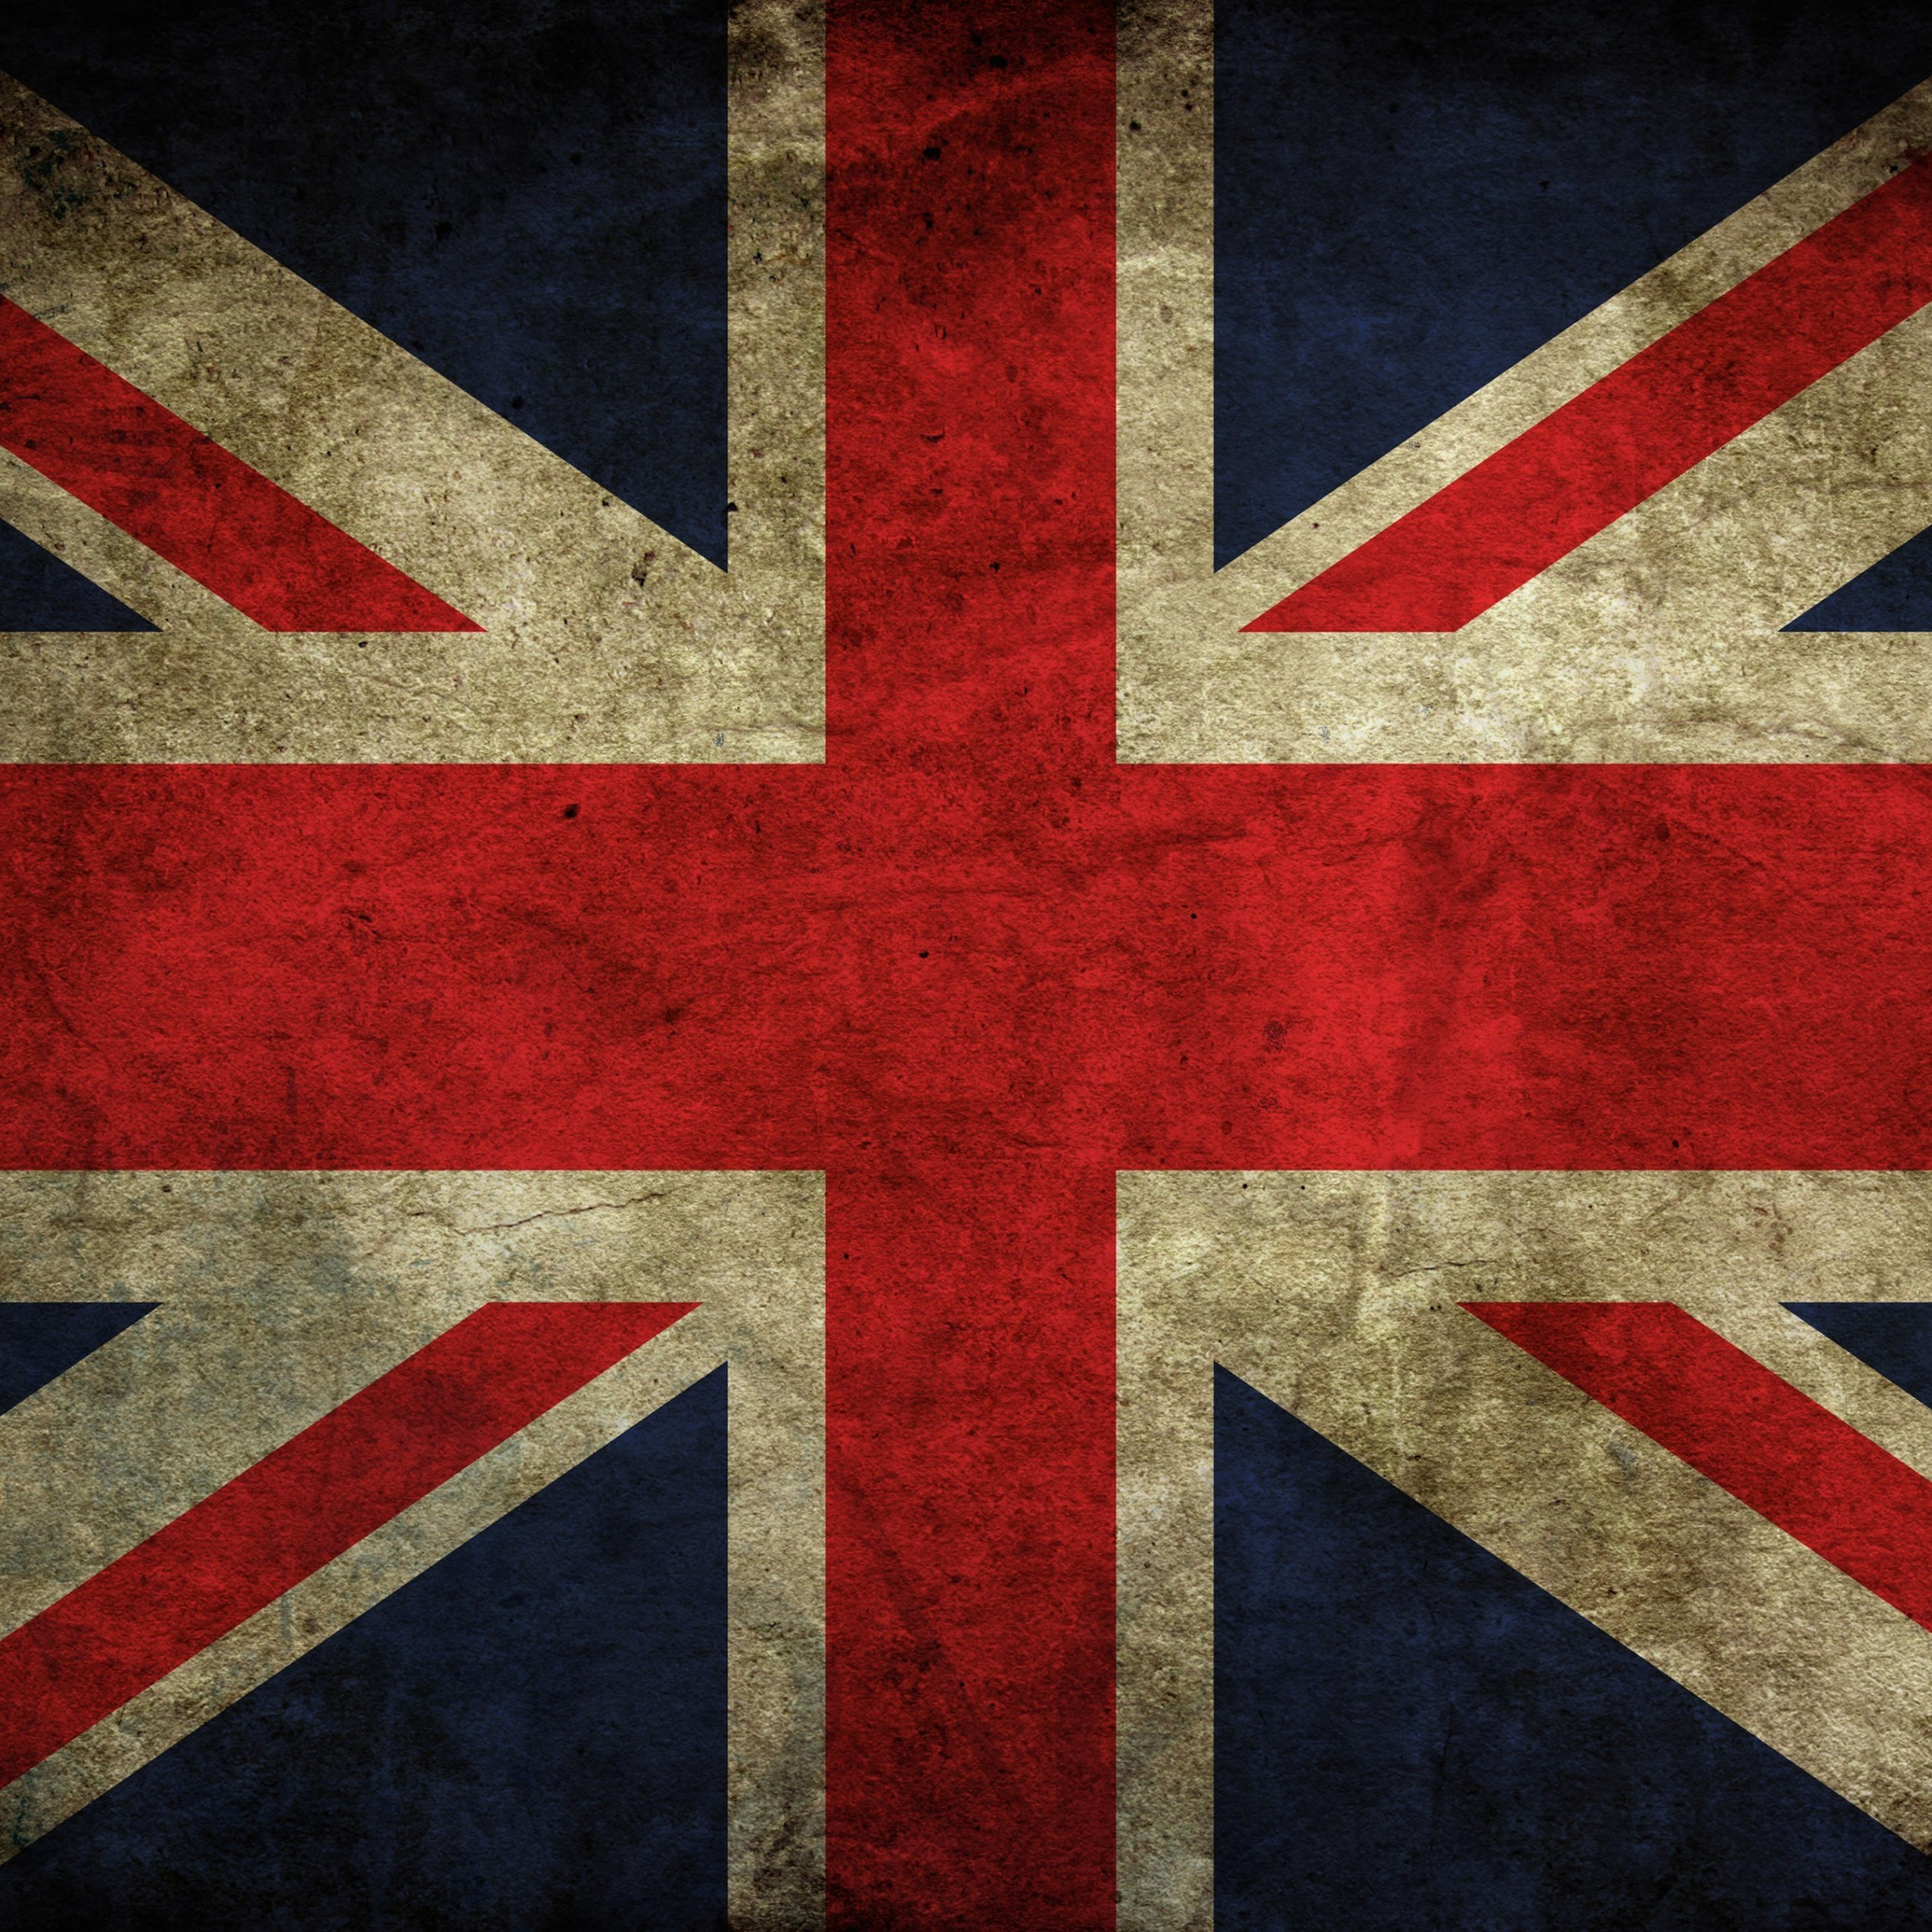 Grunge Flag Of The United Kingdom Wallpaper for Apple iPad 3